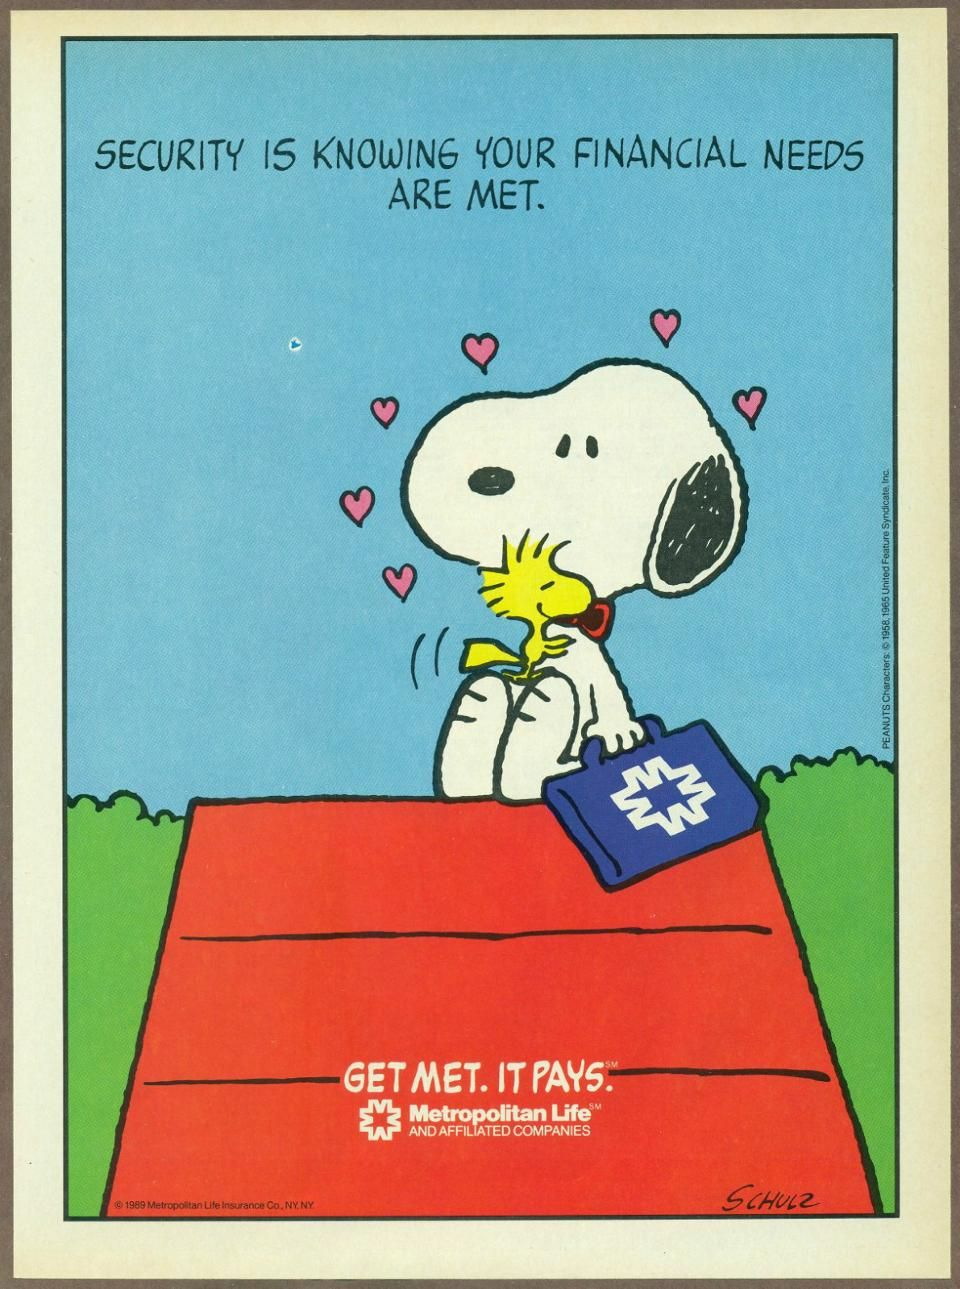 Metlife Quote Life Insurance Here's How Much Snoopy's Firingmetlife Hurts Peanuts Earnings